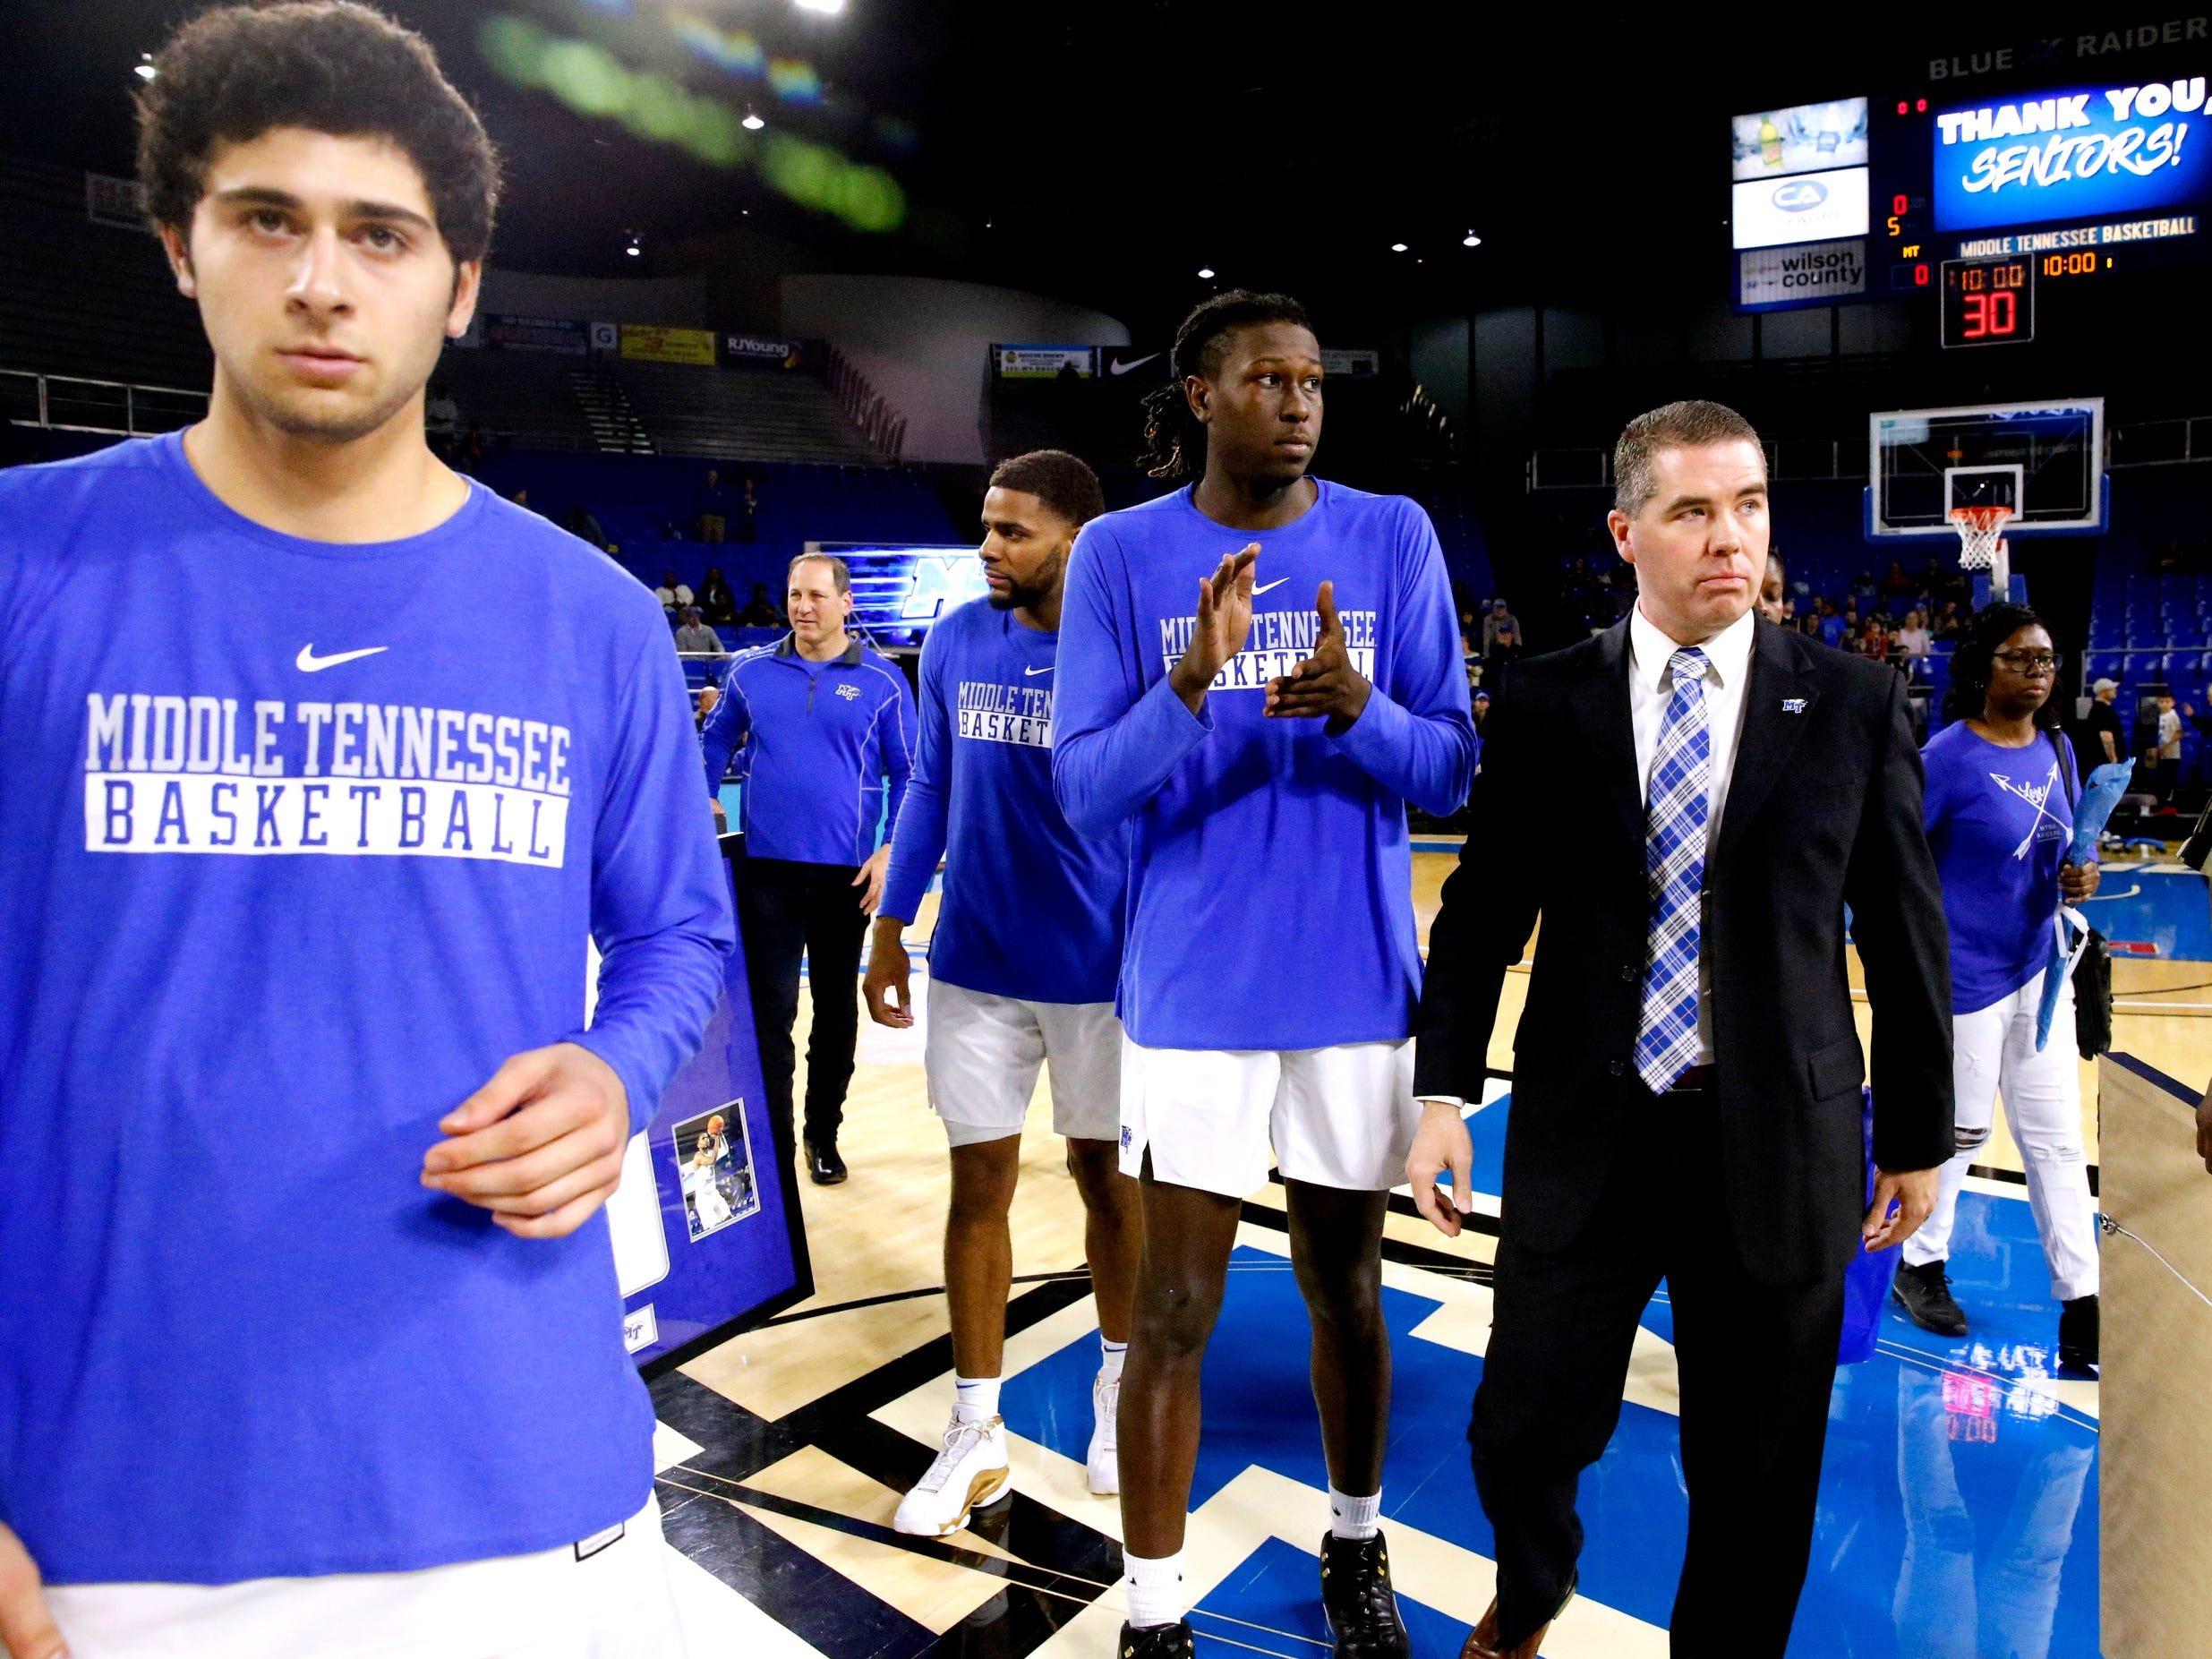 MTSU head coach Nick McDevitt heads off the court with senior players after they were honored before the game against UTEP on Saturday, March 9, 2019, at Murphy Center in Murfreesboro, Tenn.